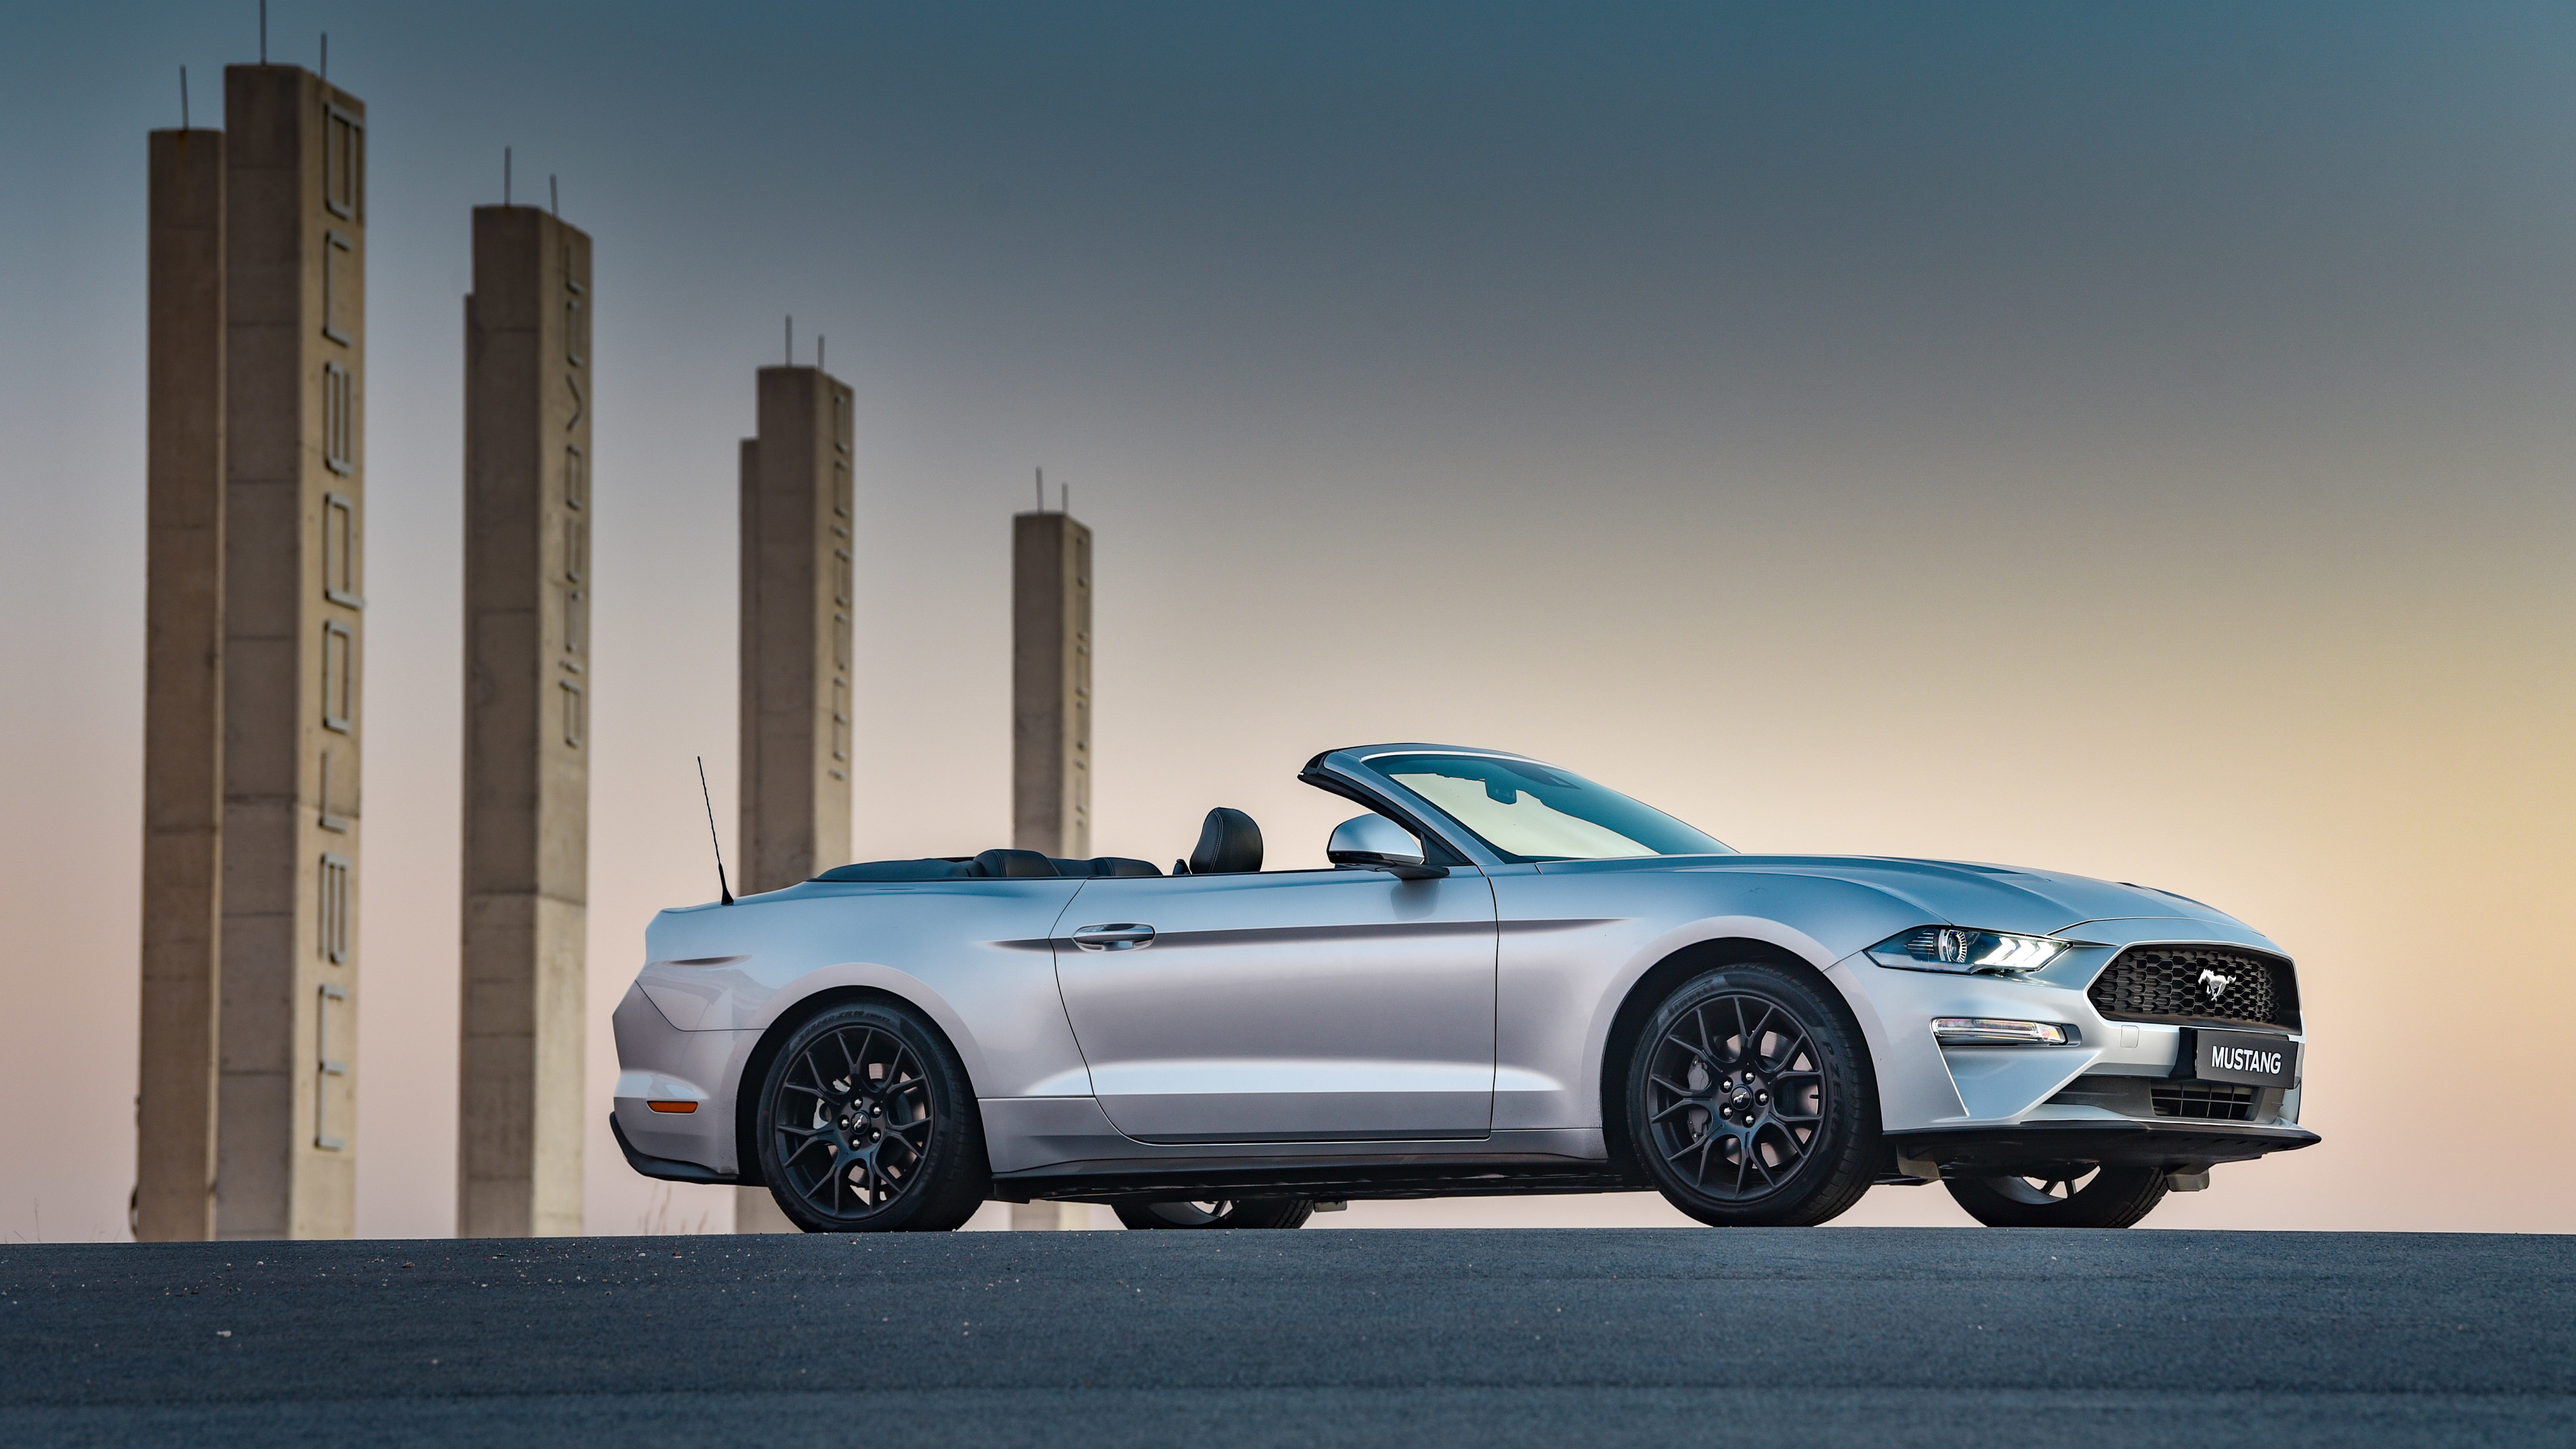 ford mustang ecoboost convertible 2019 1569188381 - Ford Mustang EcoBoost Convertible 2019 - mustang wallpapers, hd-wallpapers, ford mustang wallpapers, cars wallpapers, 4k-wallpapers, 2019 cars wallpapers